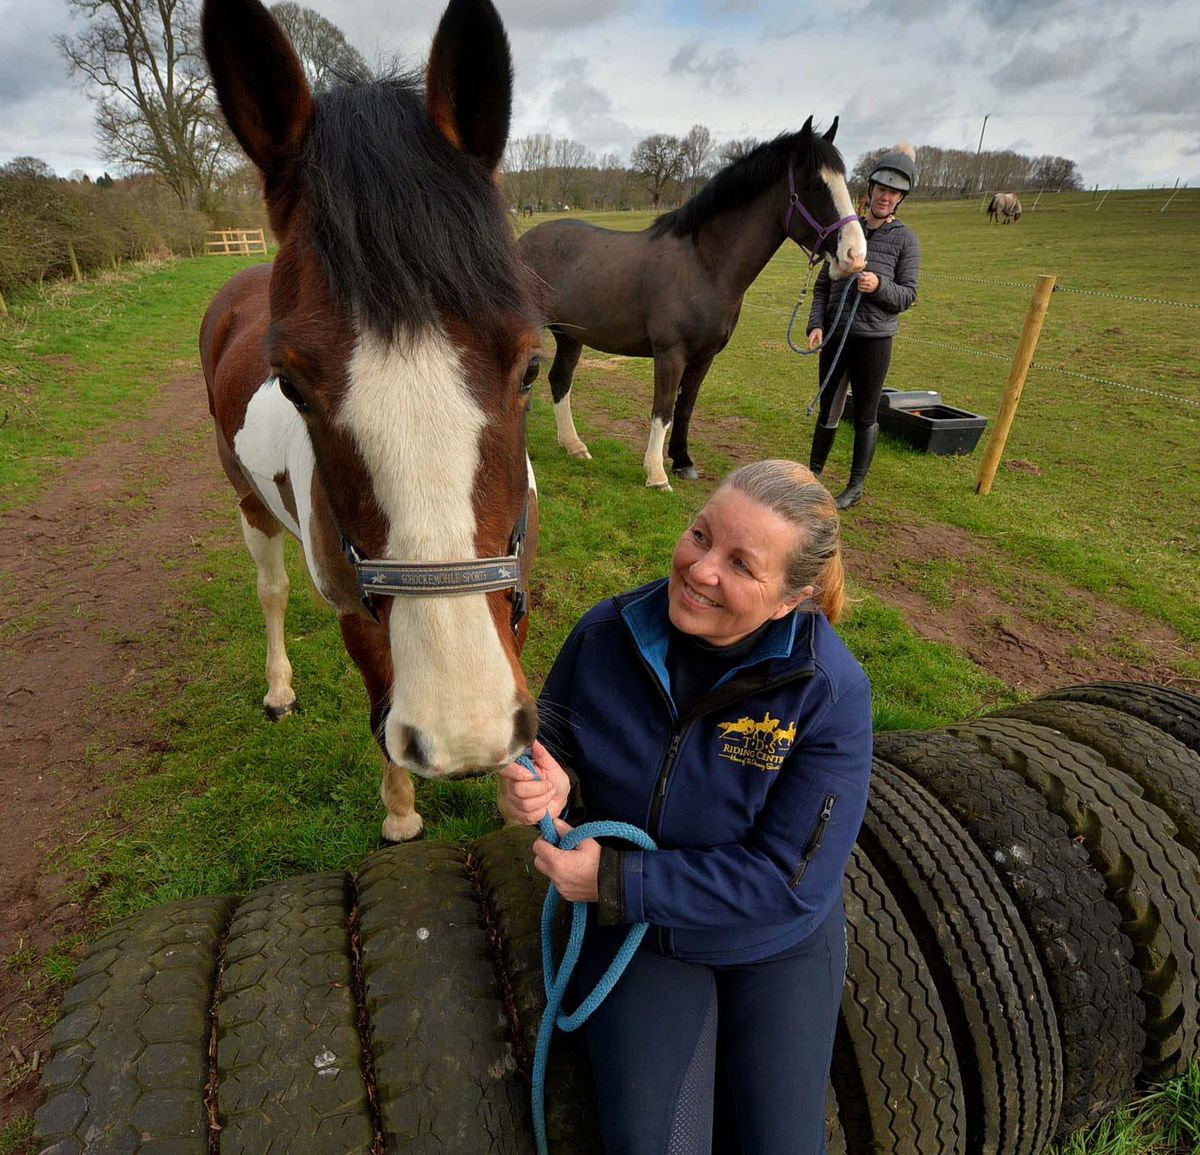 Denise O'Reilly with one of the horses